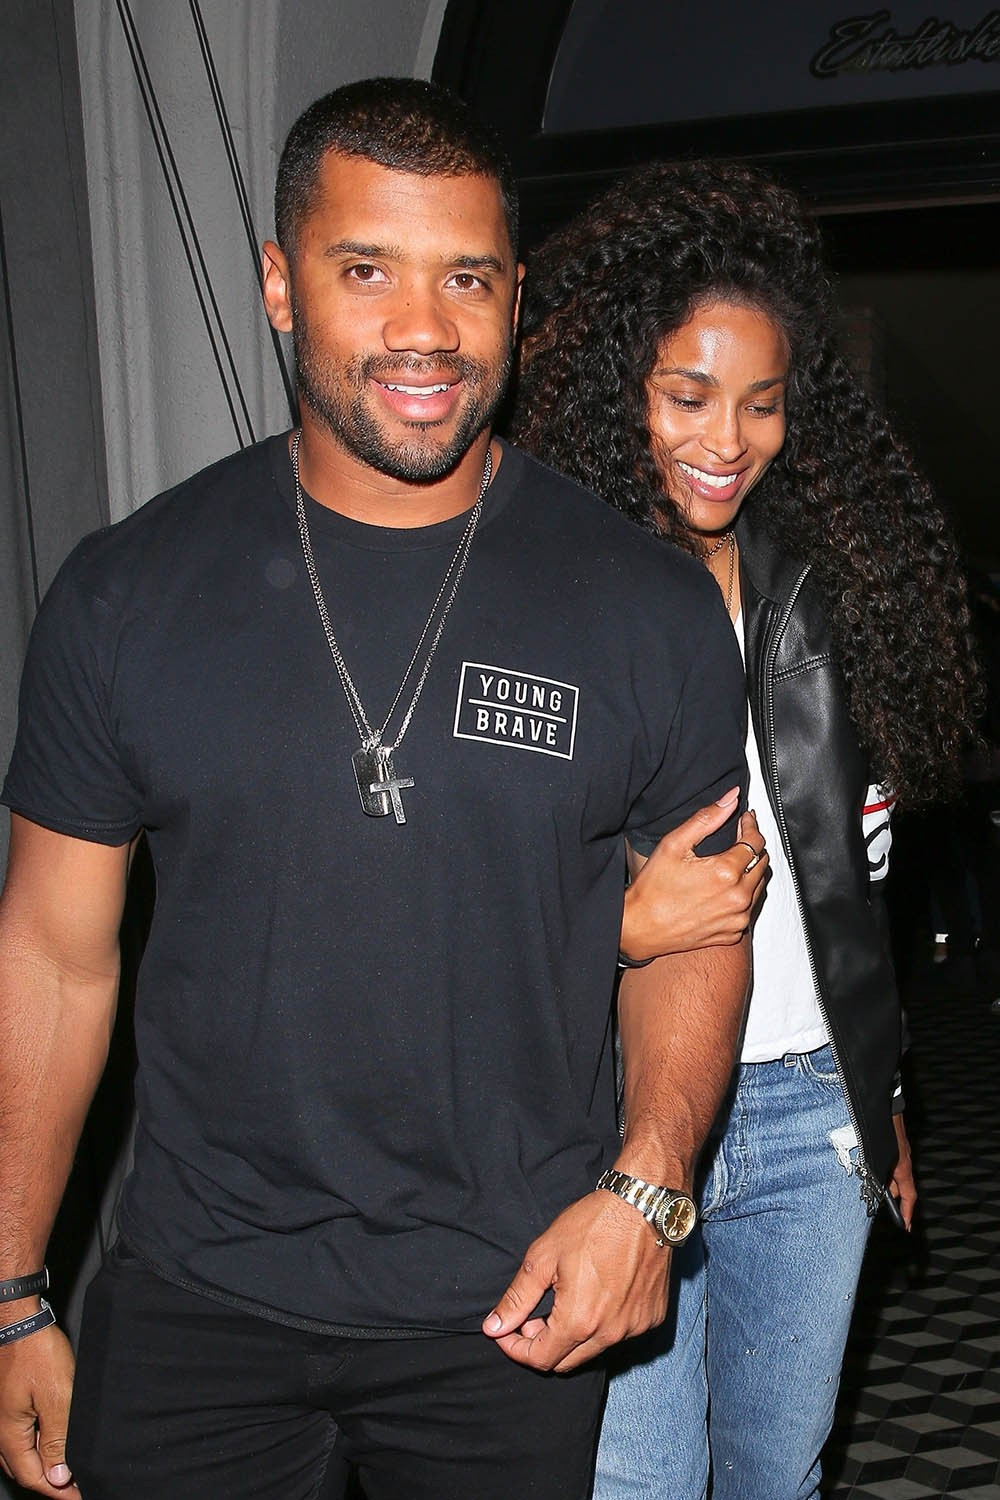 Celebrity Couples: Russell & Ciara, Tristan & Khloe, Kourtney & Younes - See how they stepped out over the weekend (Photos)